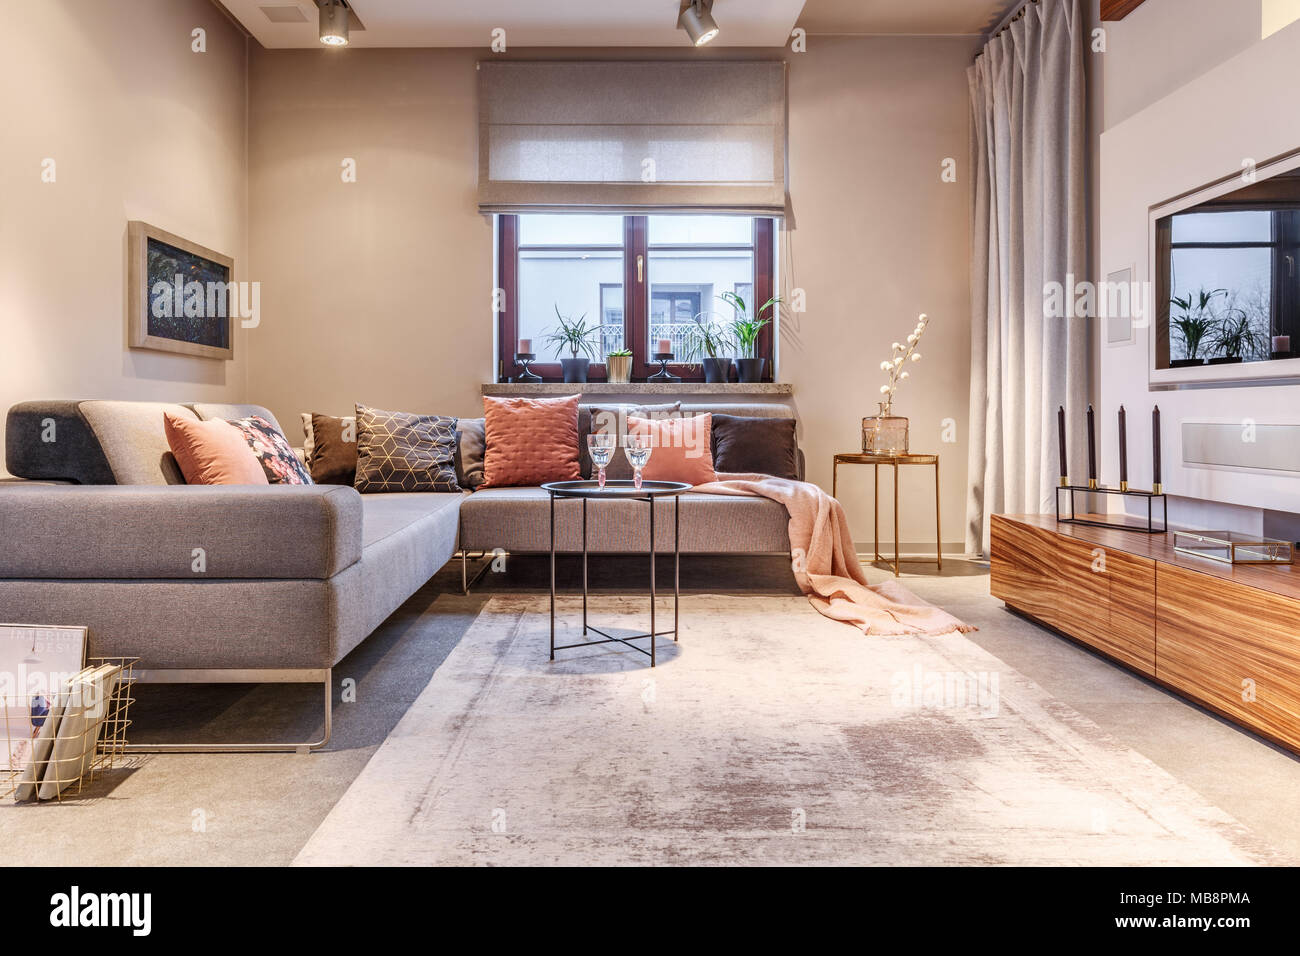 Cozy living room interior with a big sofa many cushions wooden shelves curtains mirror and ornaments & Cozy living room interior with a big sofa many cushions wooden ...